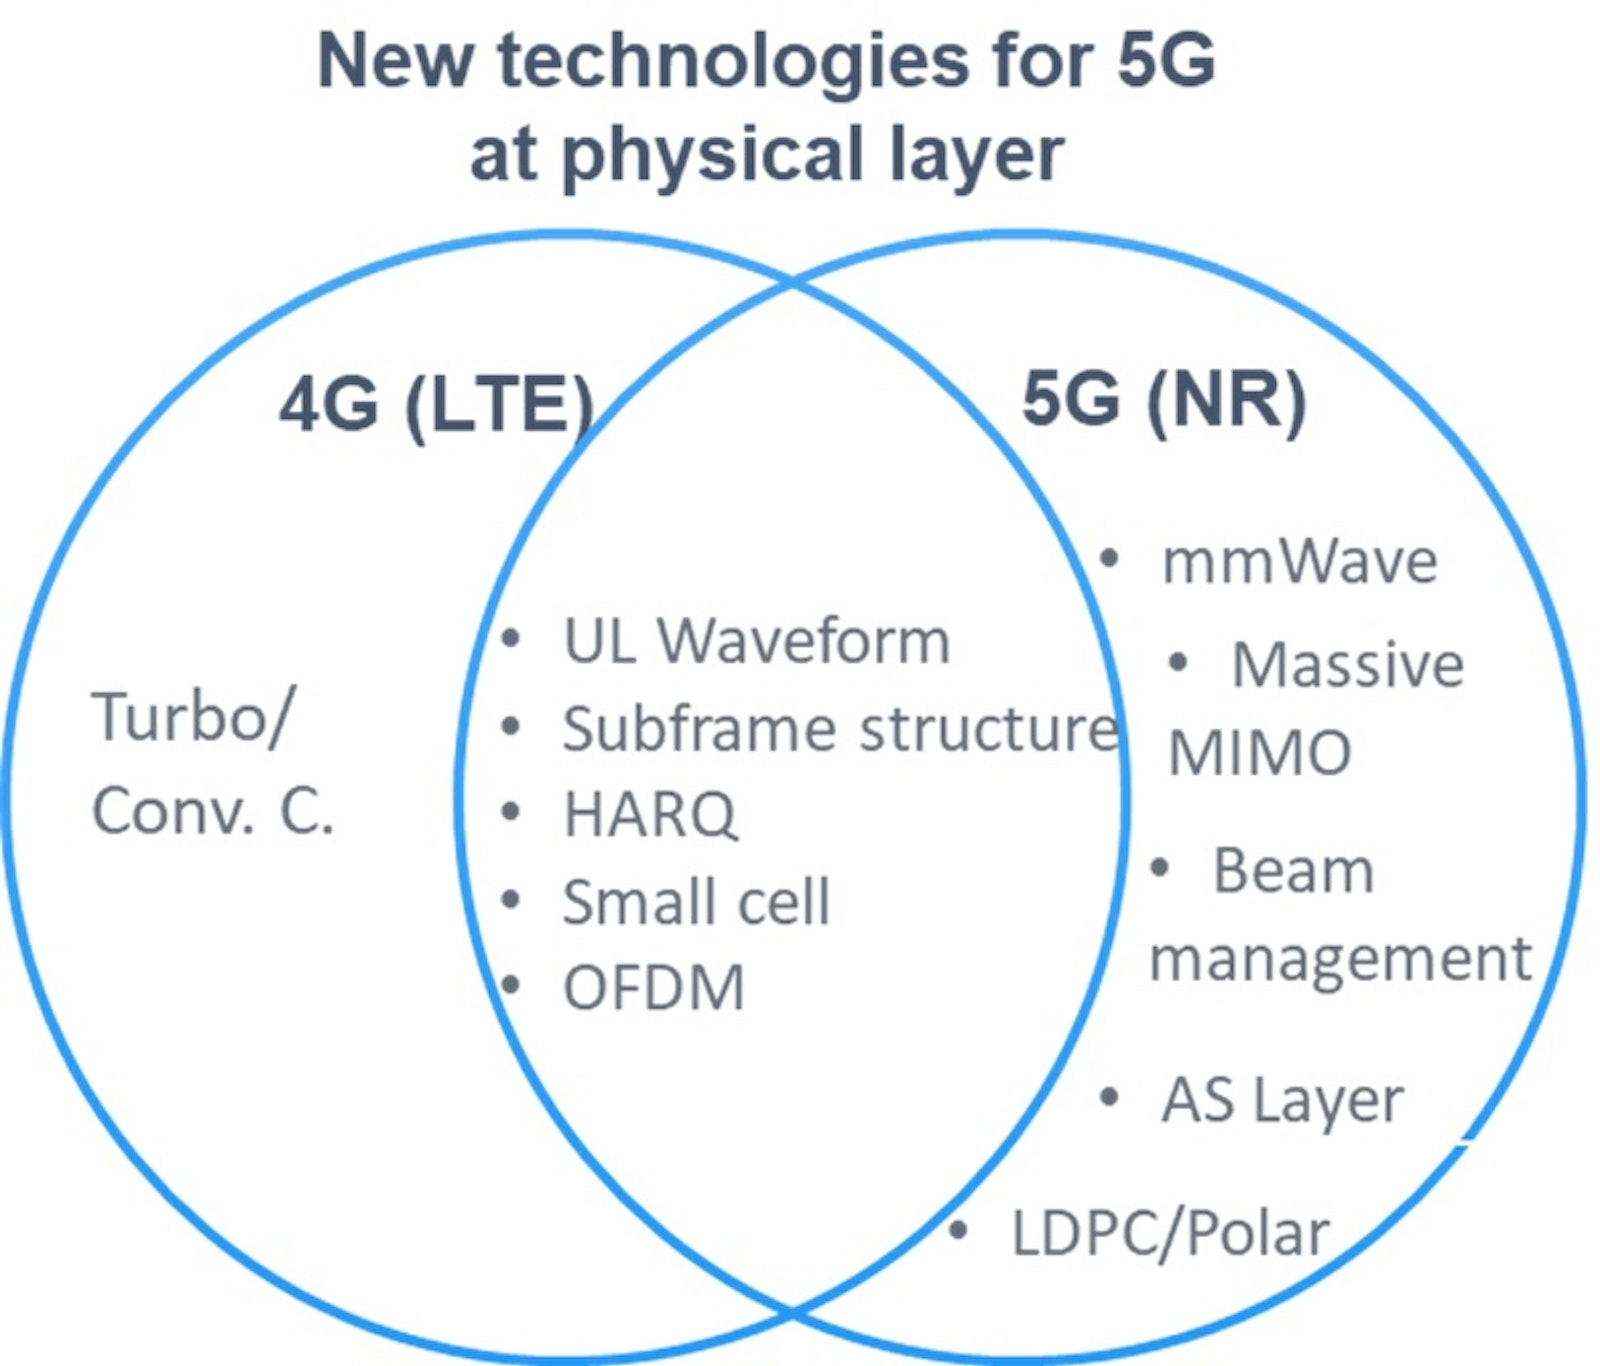 IDTechEx Research: 5G is coming, what to expect and why | IDTechEx